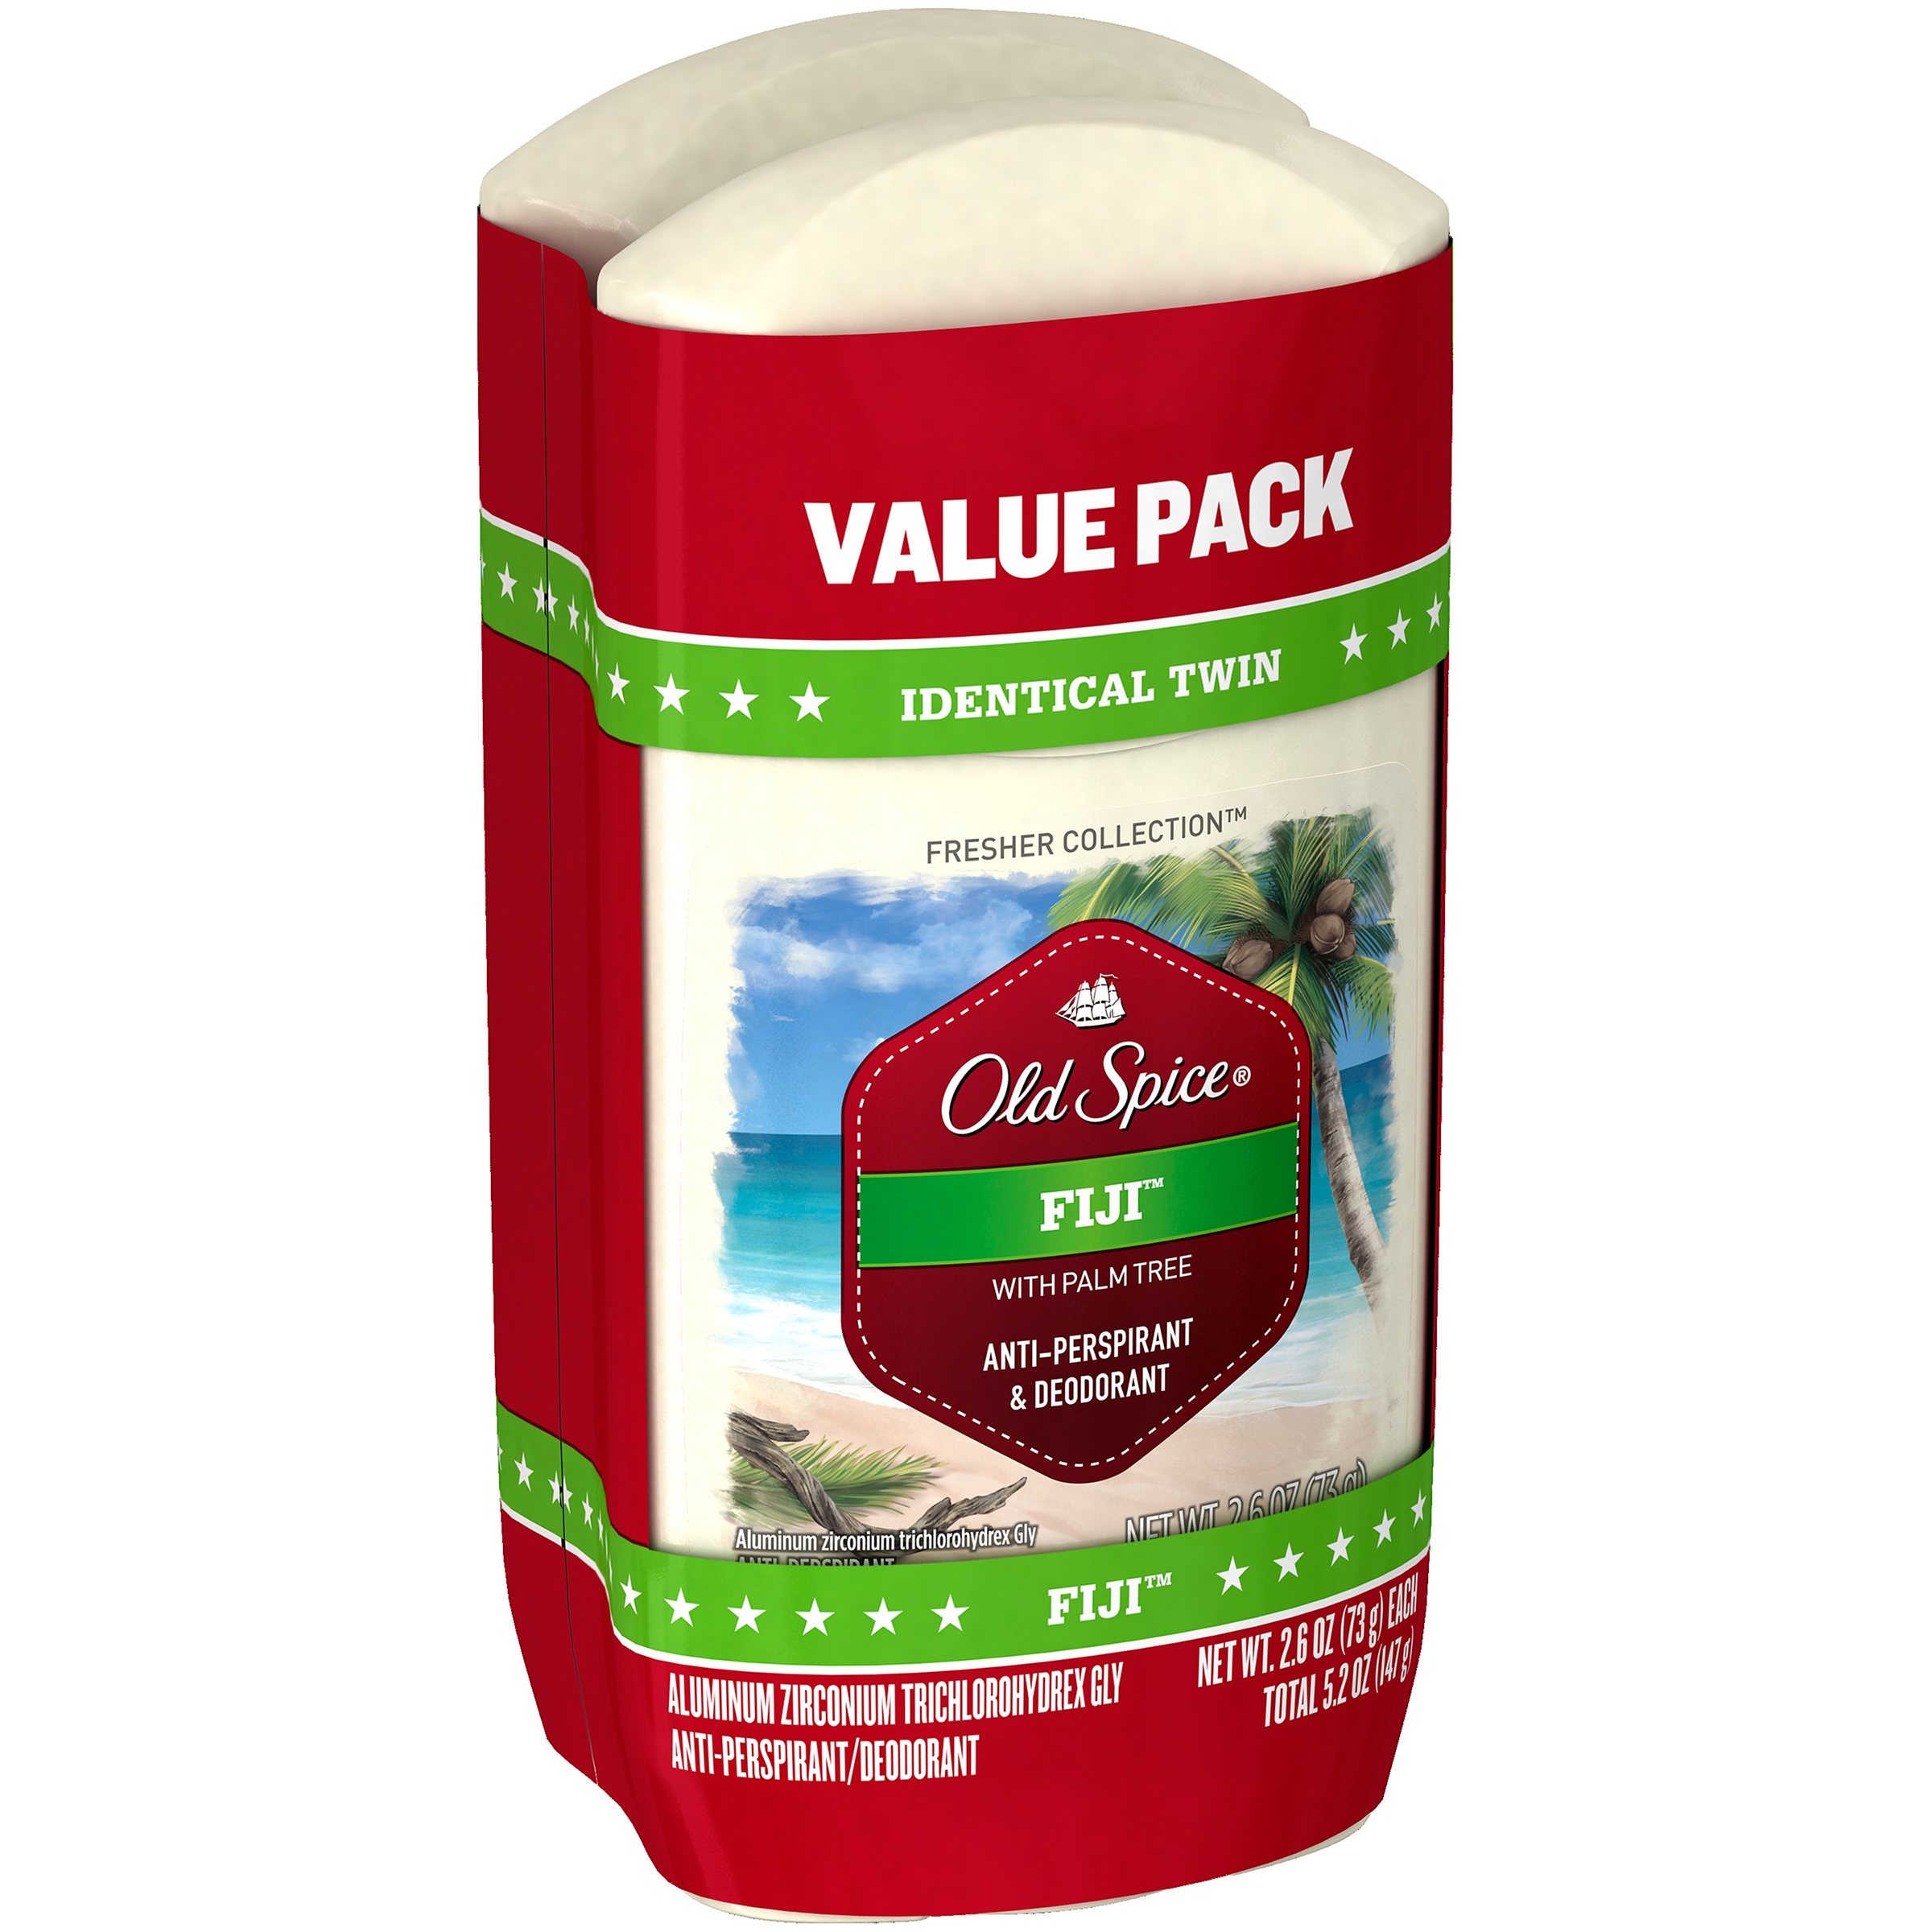 Old Spice® Fresher Collection™ Fiji™ Anti-Perspirant/Deodorant 2-2.6 oz. Sticks